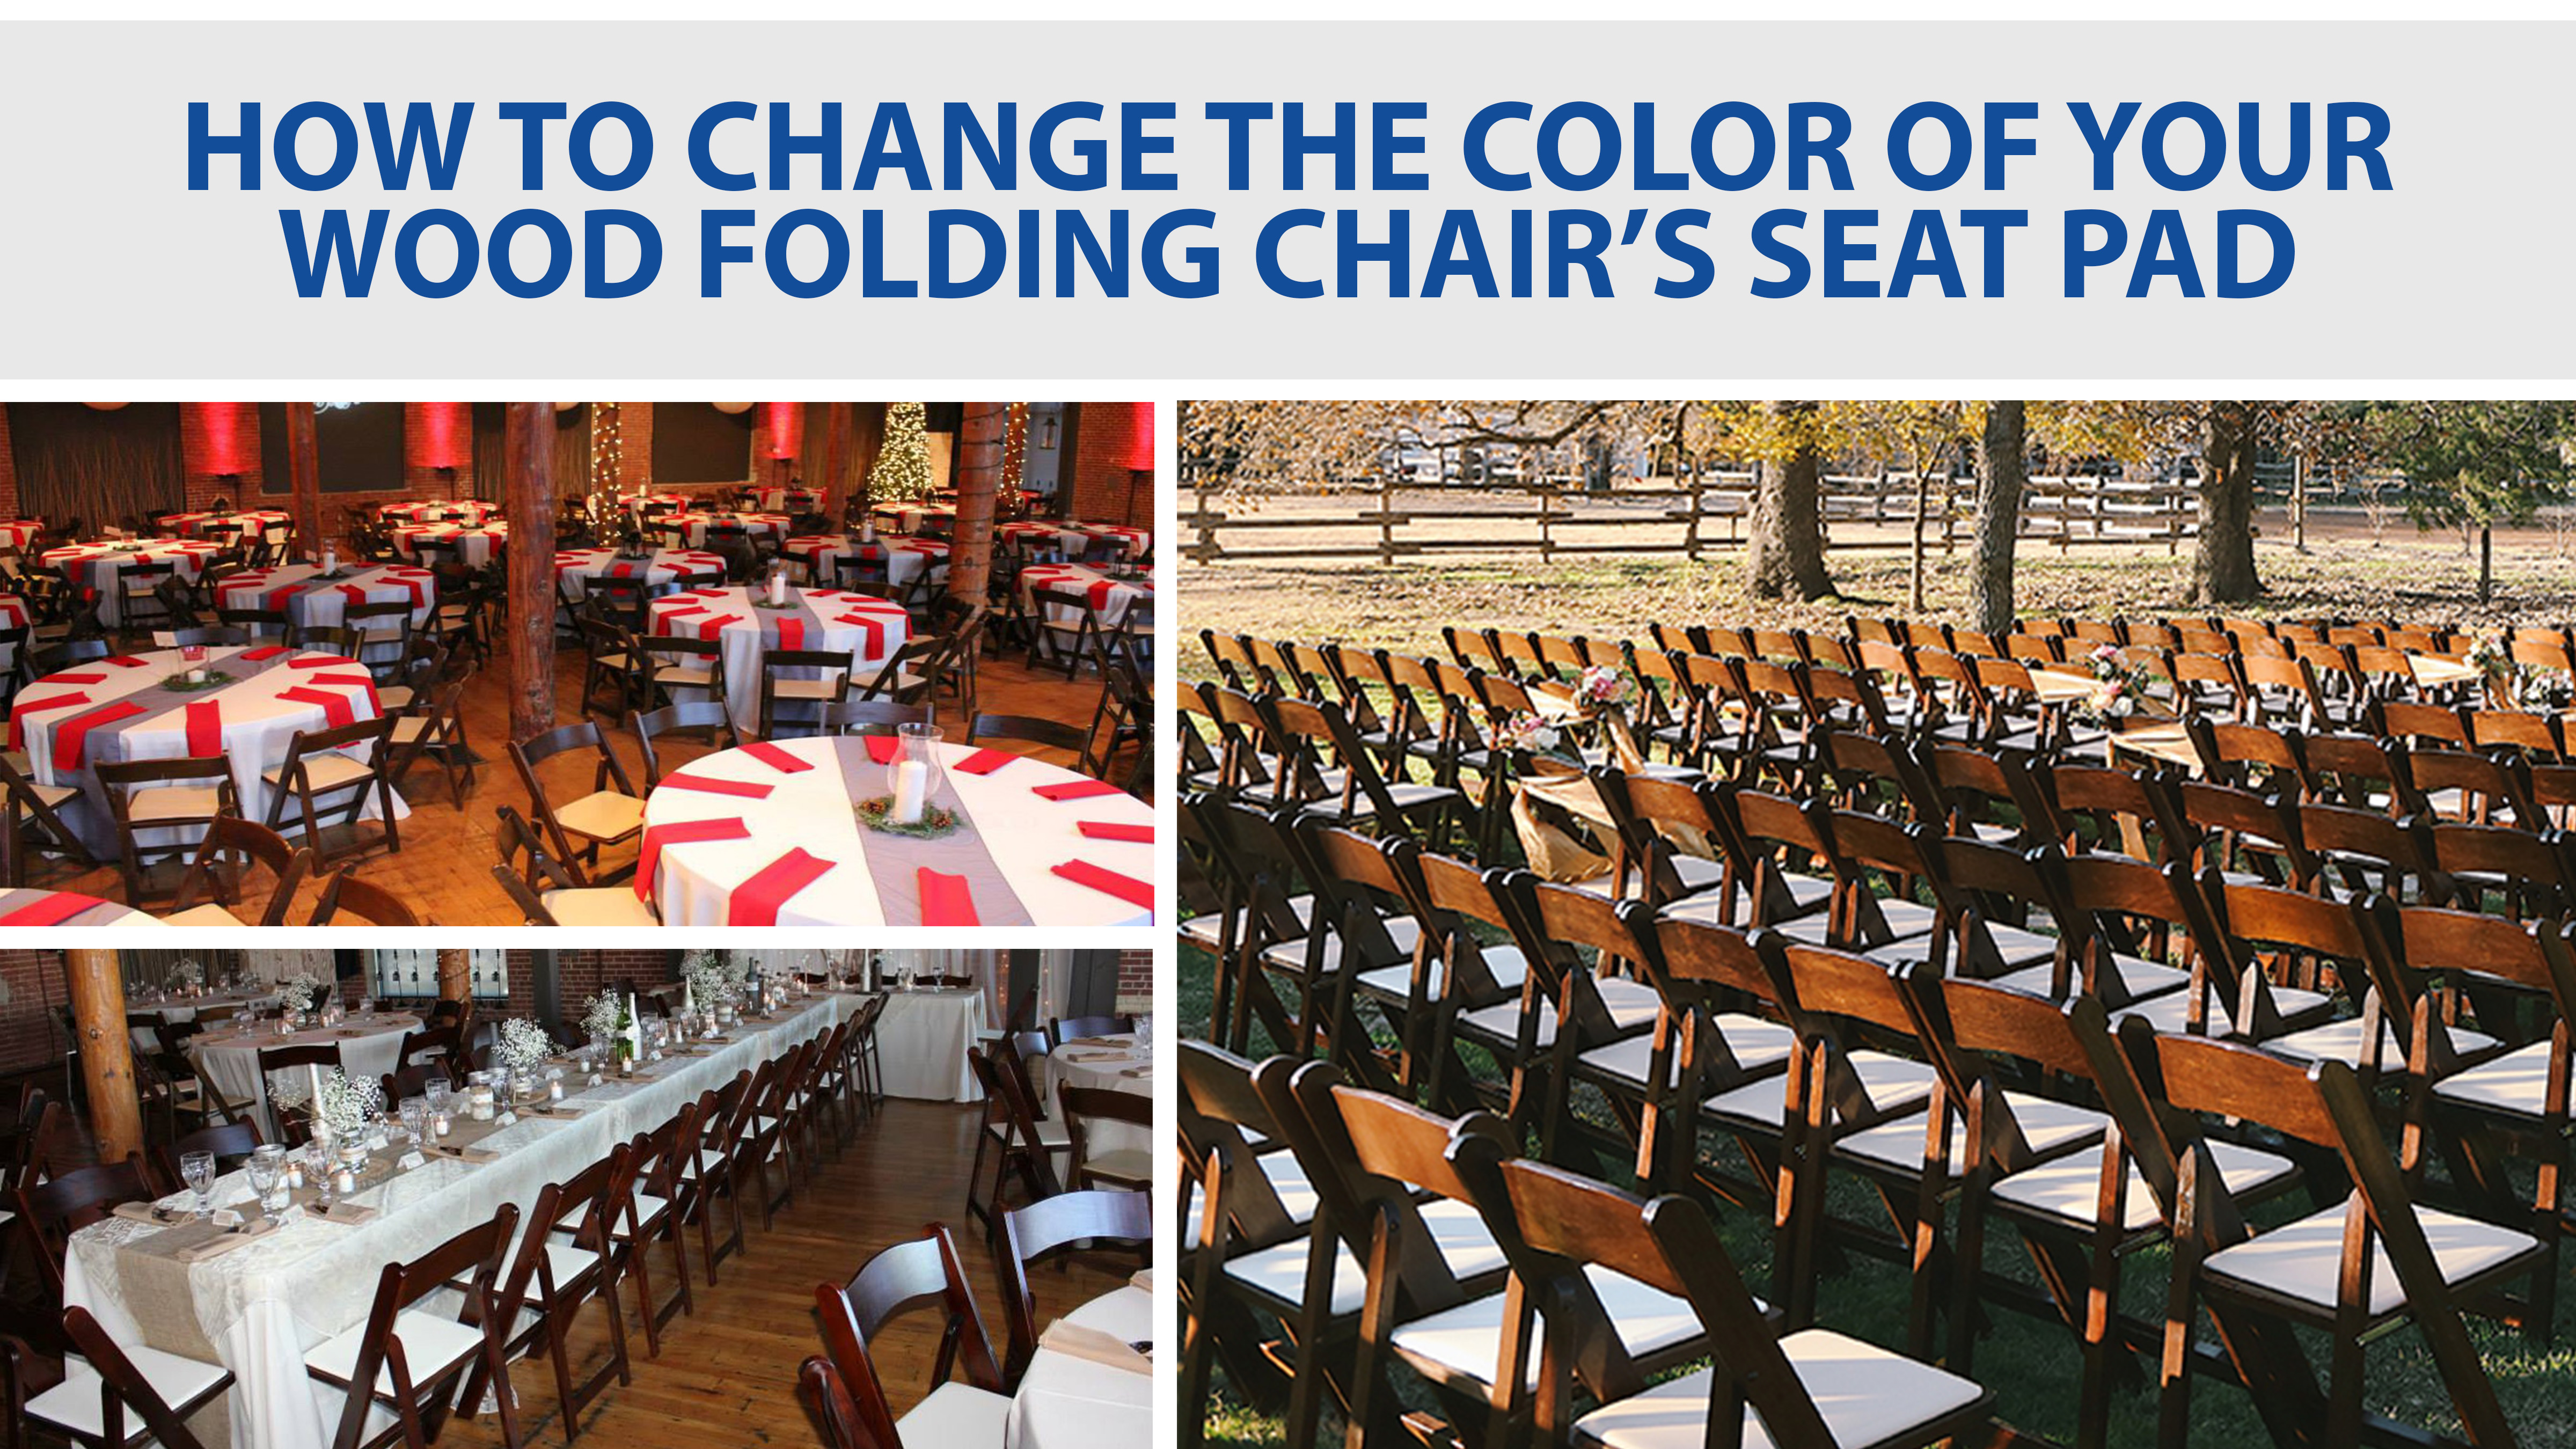 How To Change The Color Seat Pad On Your Wood Folding Chair